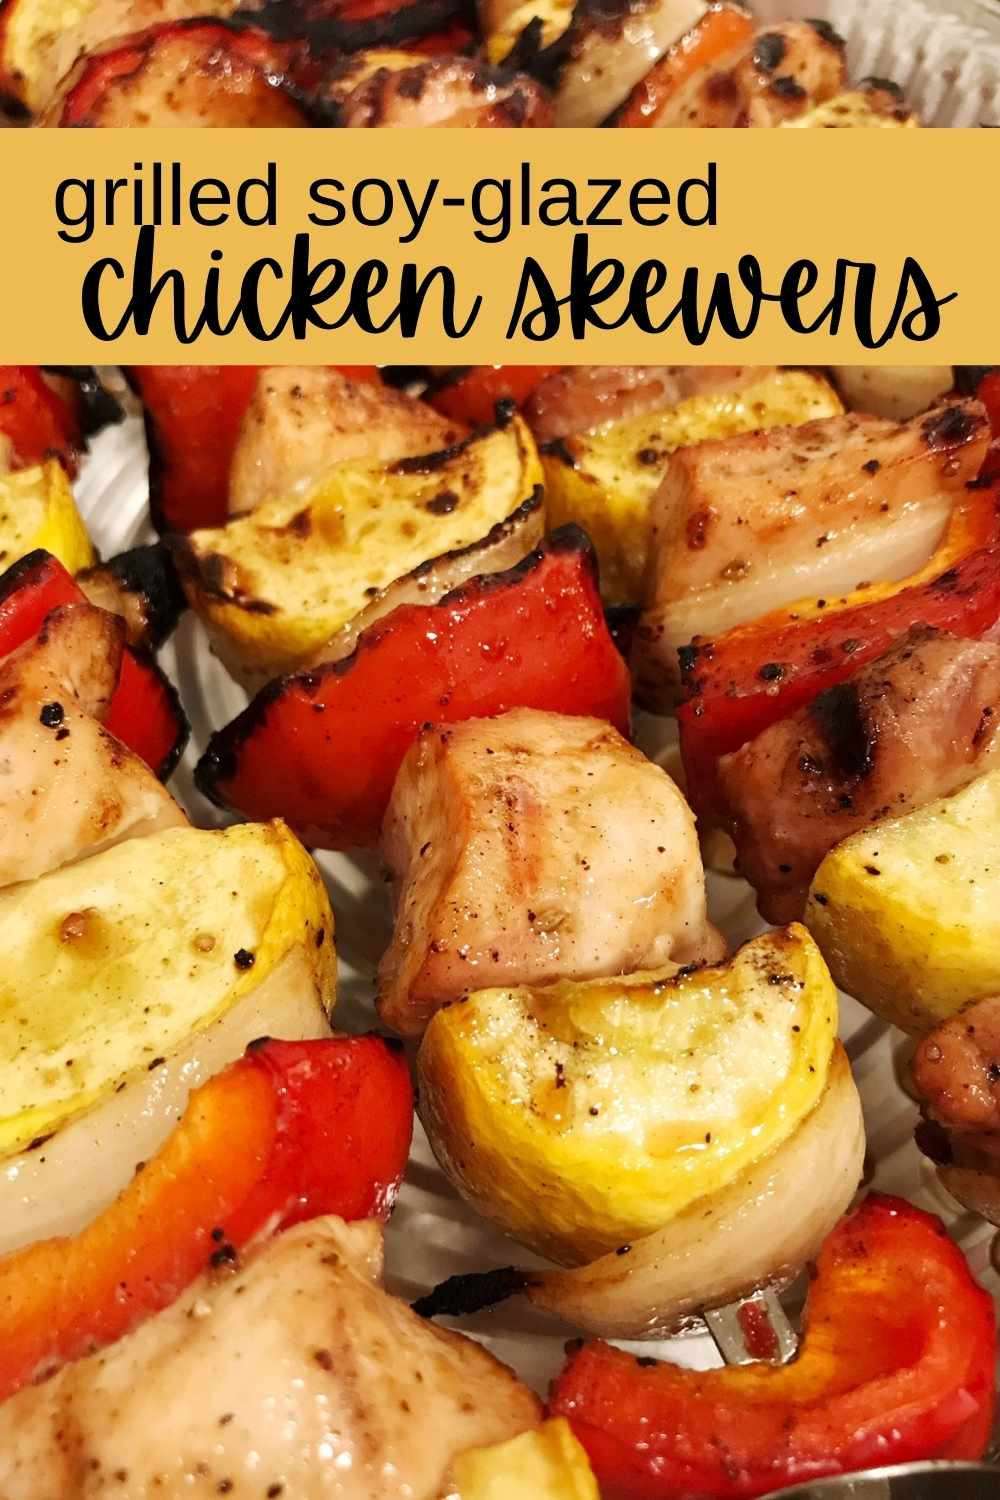 grilled soy-glazed chicken skewers